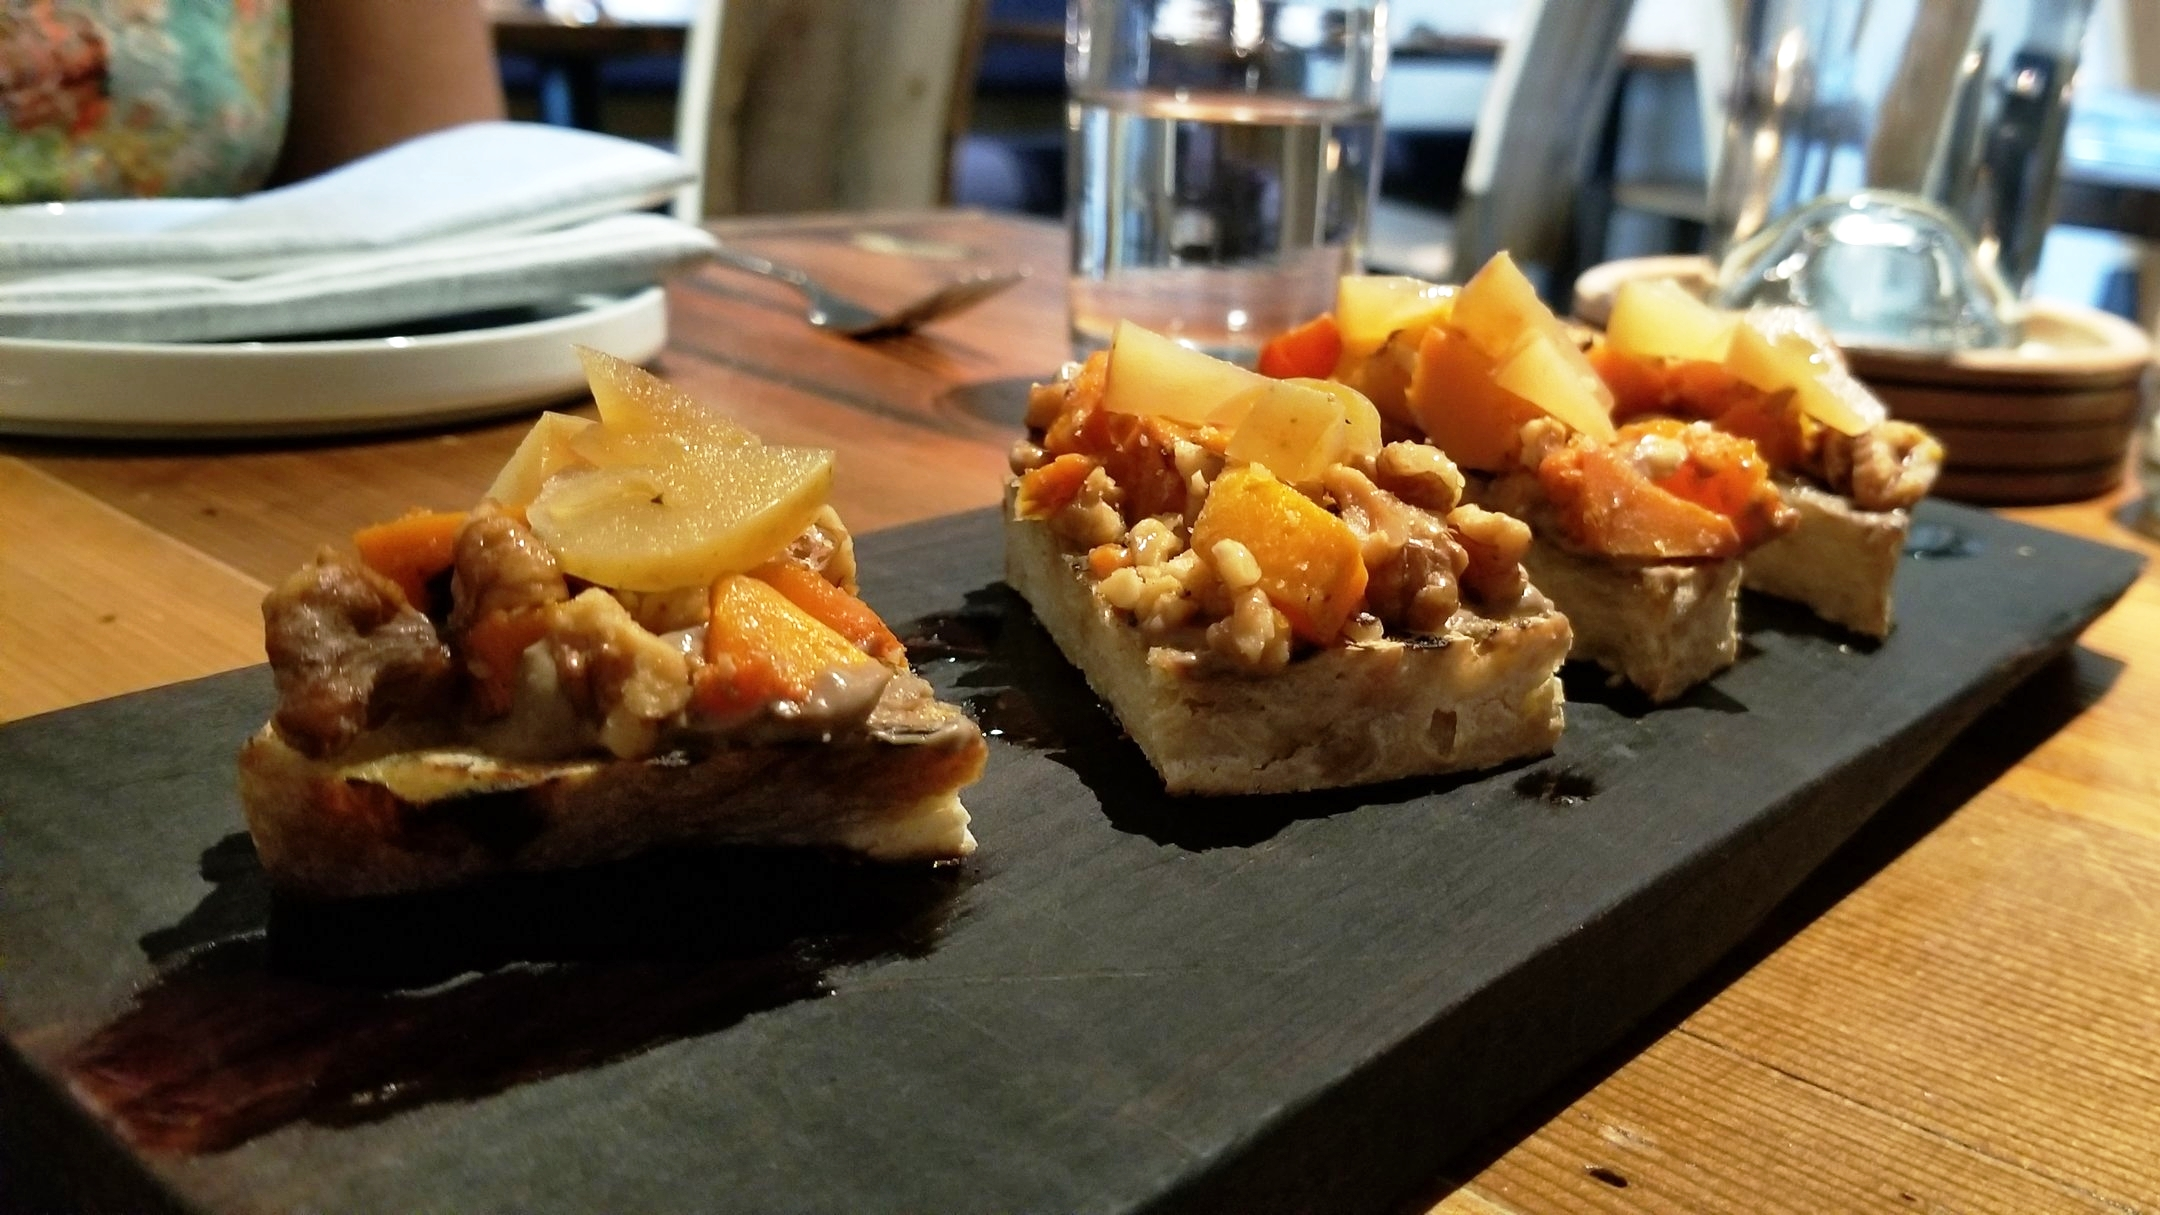 The sourdough bruschetta is a great way to start off the meal. Photo by Nick Bailey